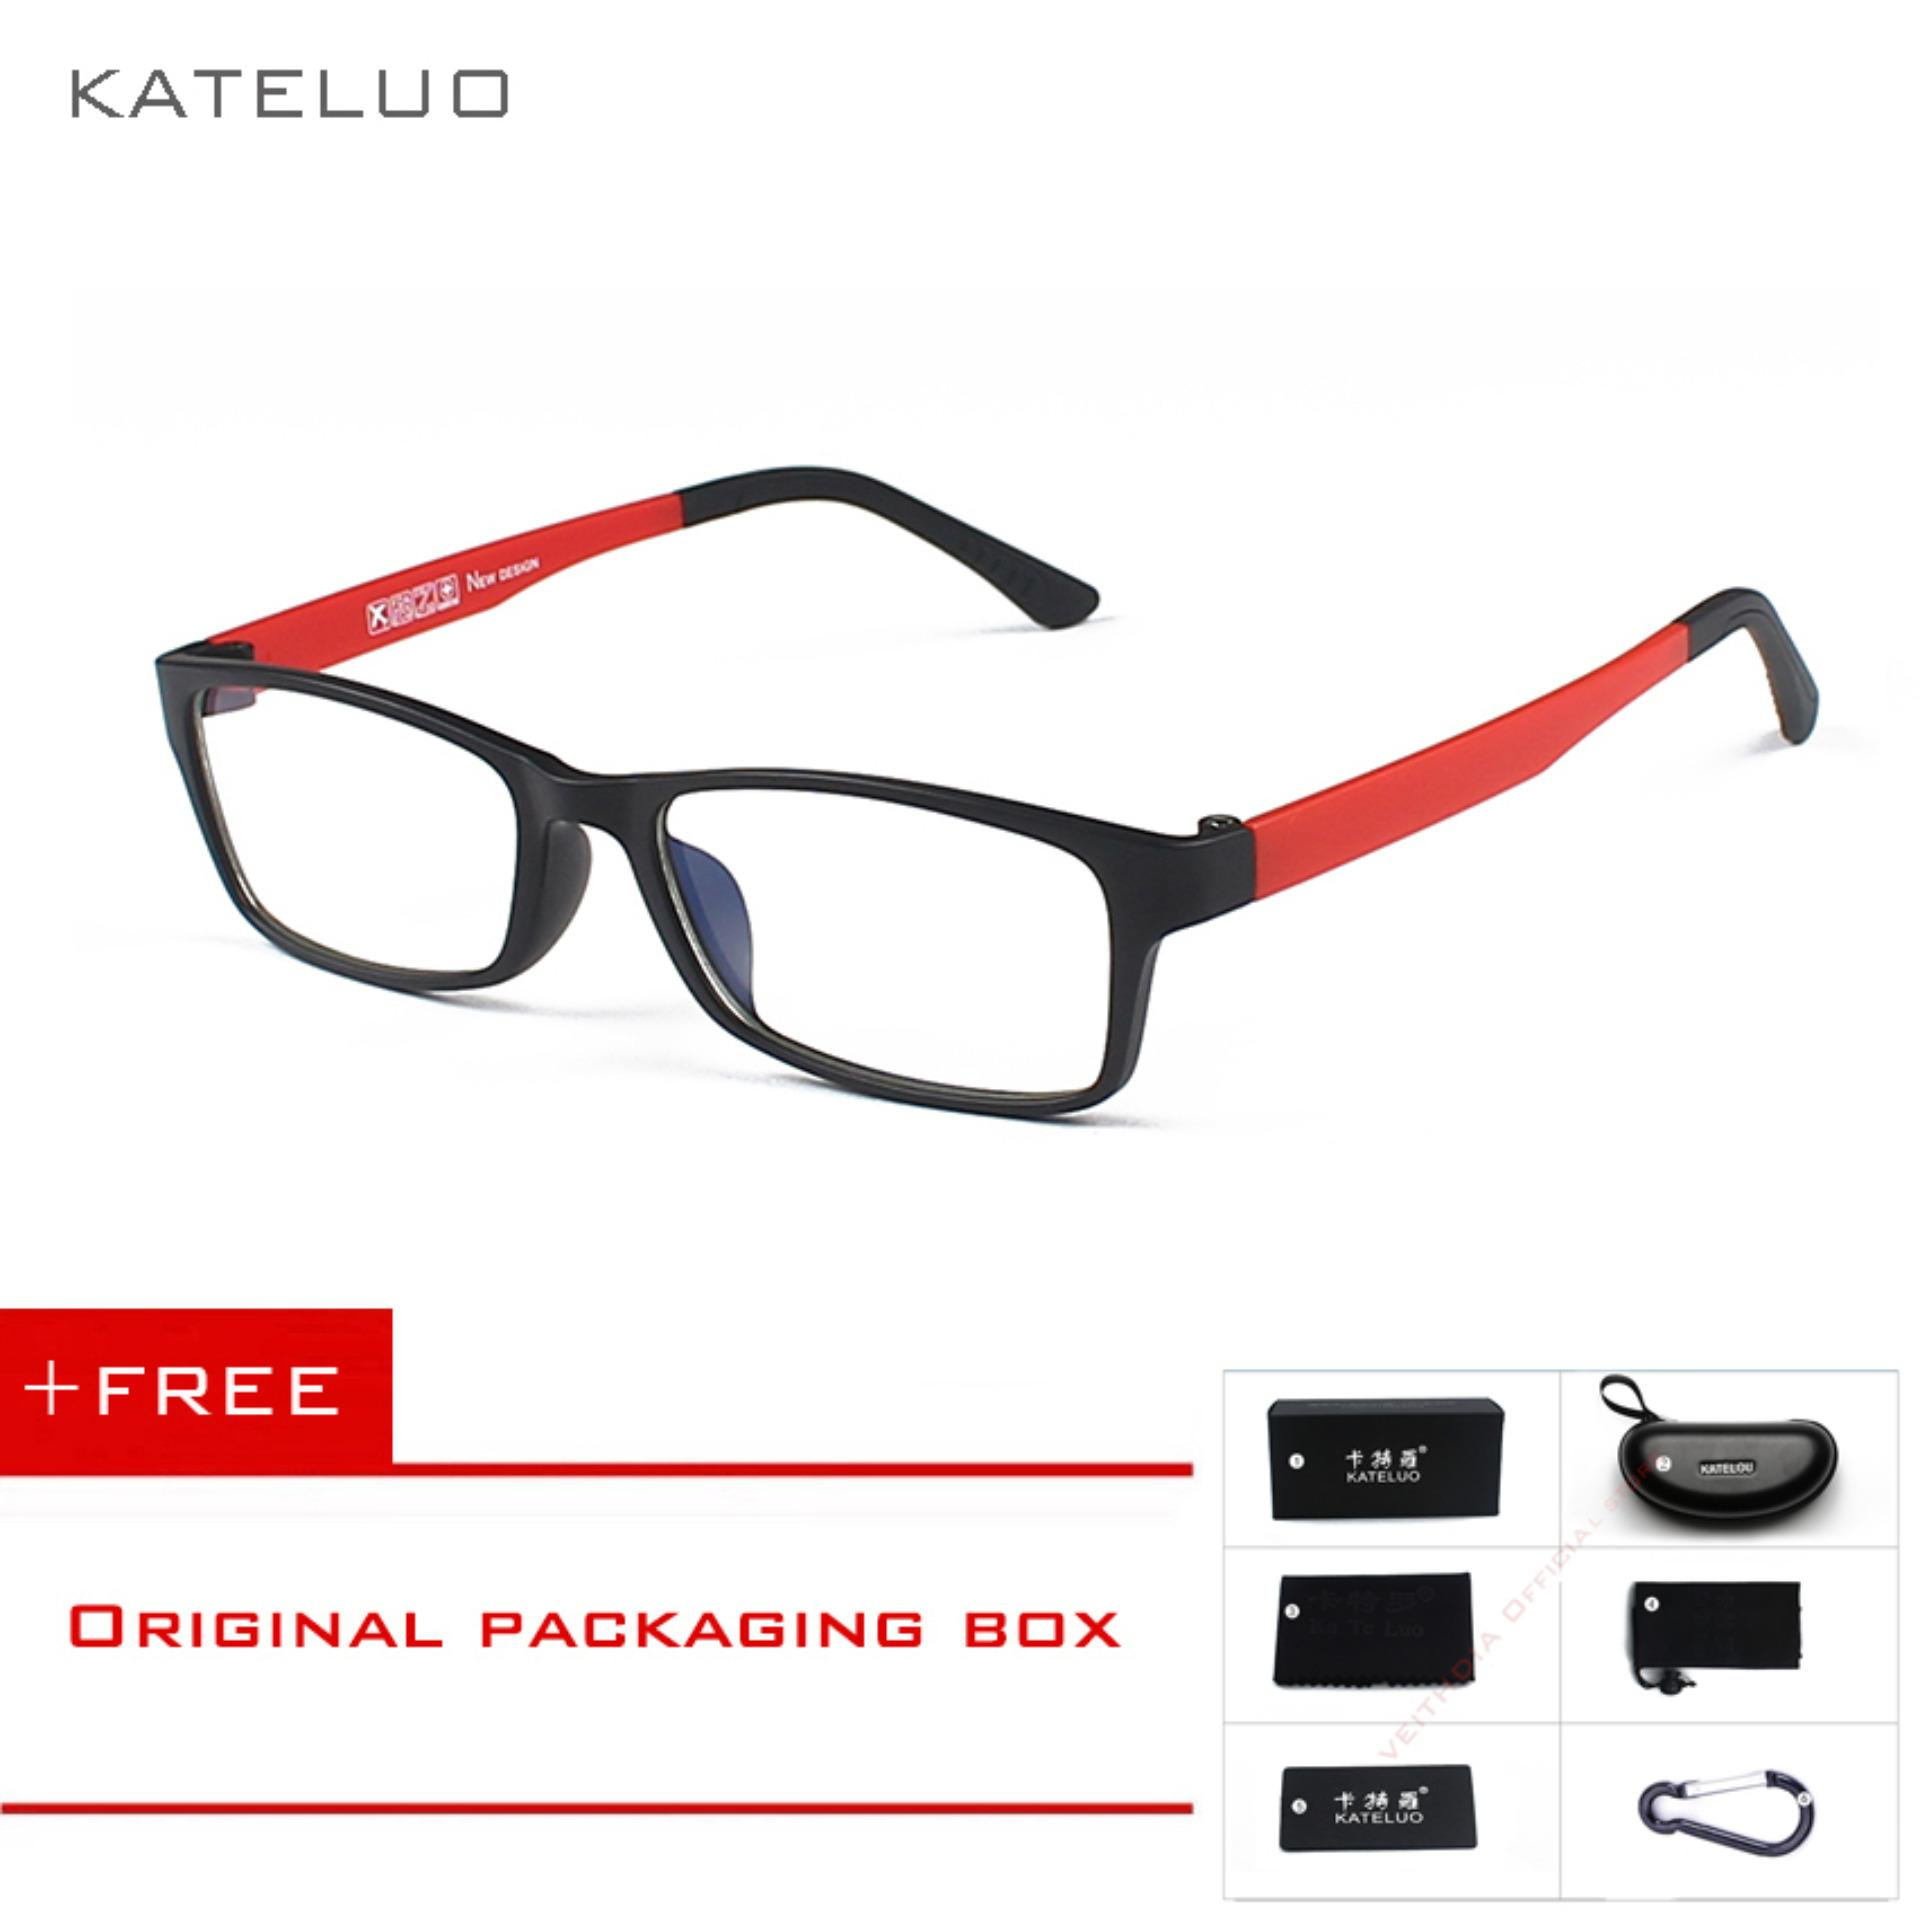 Kateluo Ultem Pei Tungsten Computer Goggles Anti Blue Laser Fatigue Radiation Resistant Eyeglasses Glasses Frame 1302 Lower Price